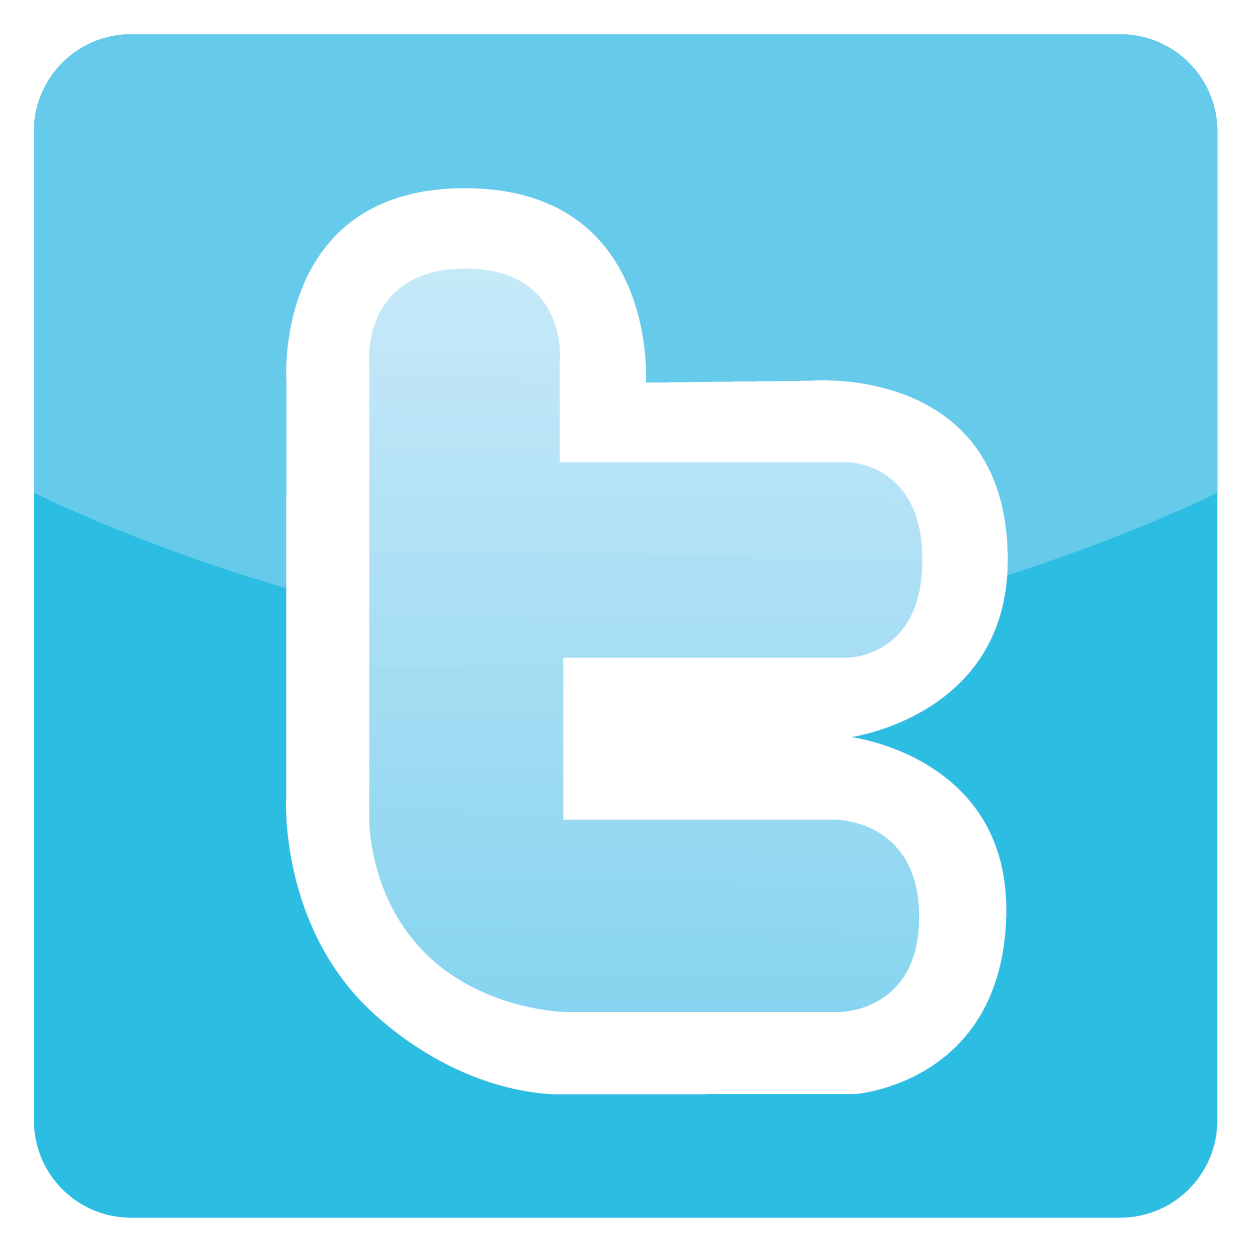 Icons Twitter Computer Design Logo Icon PNG Image